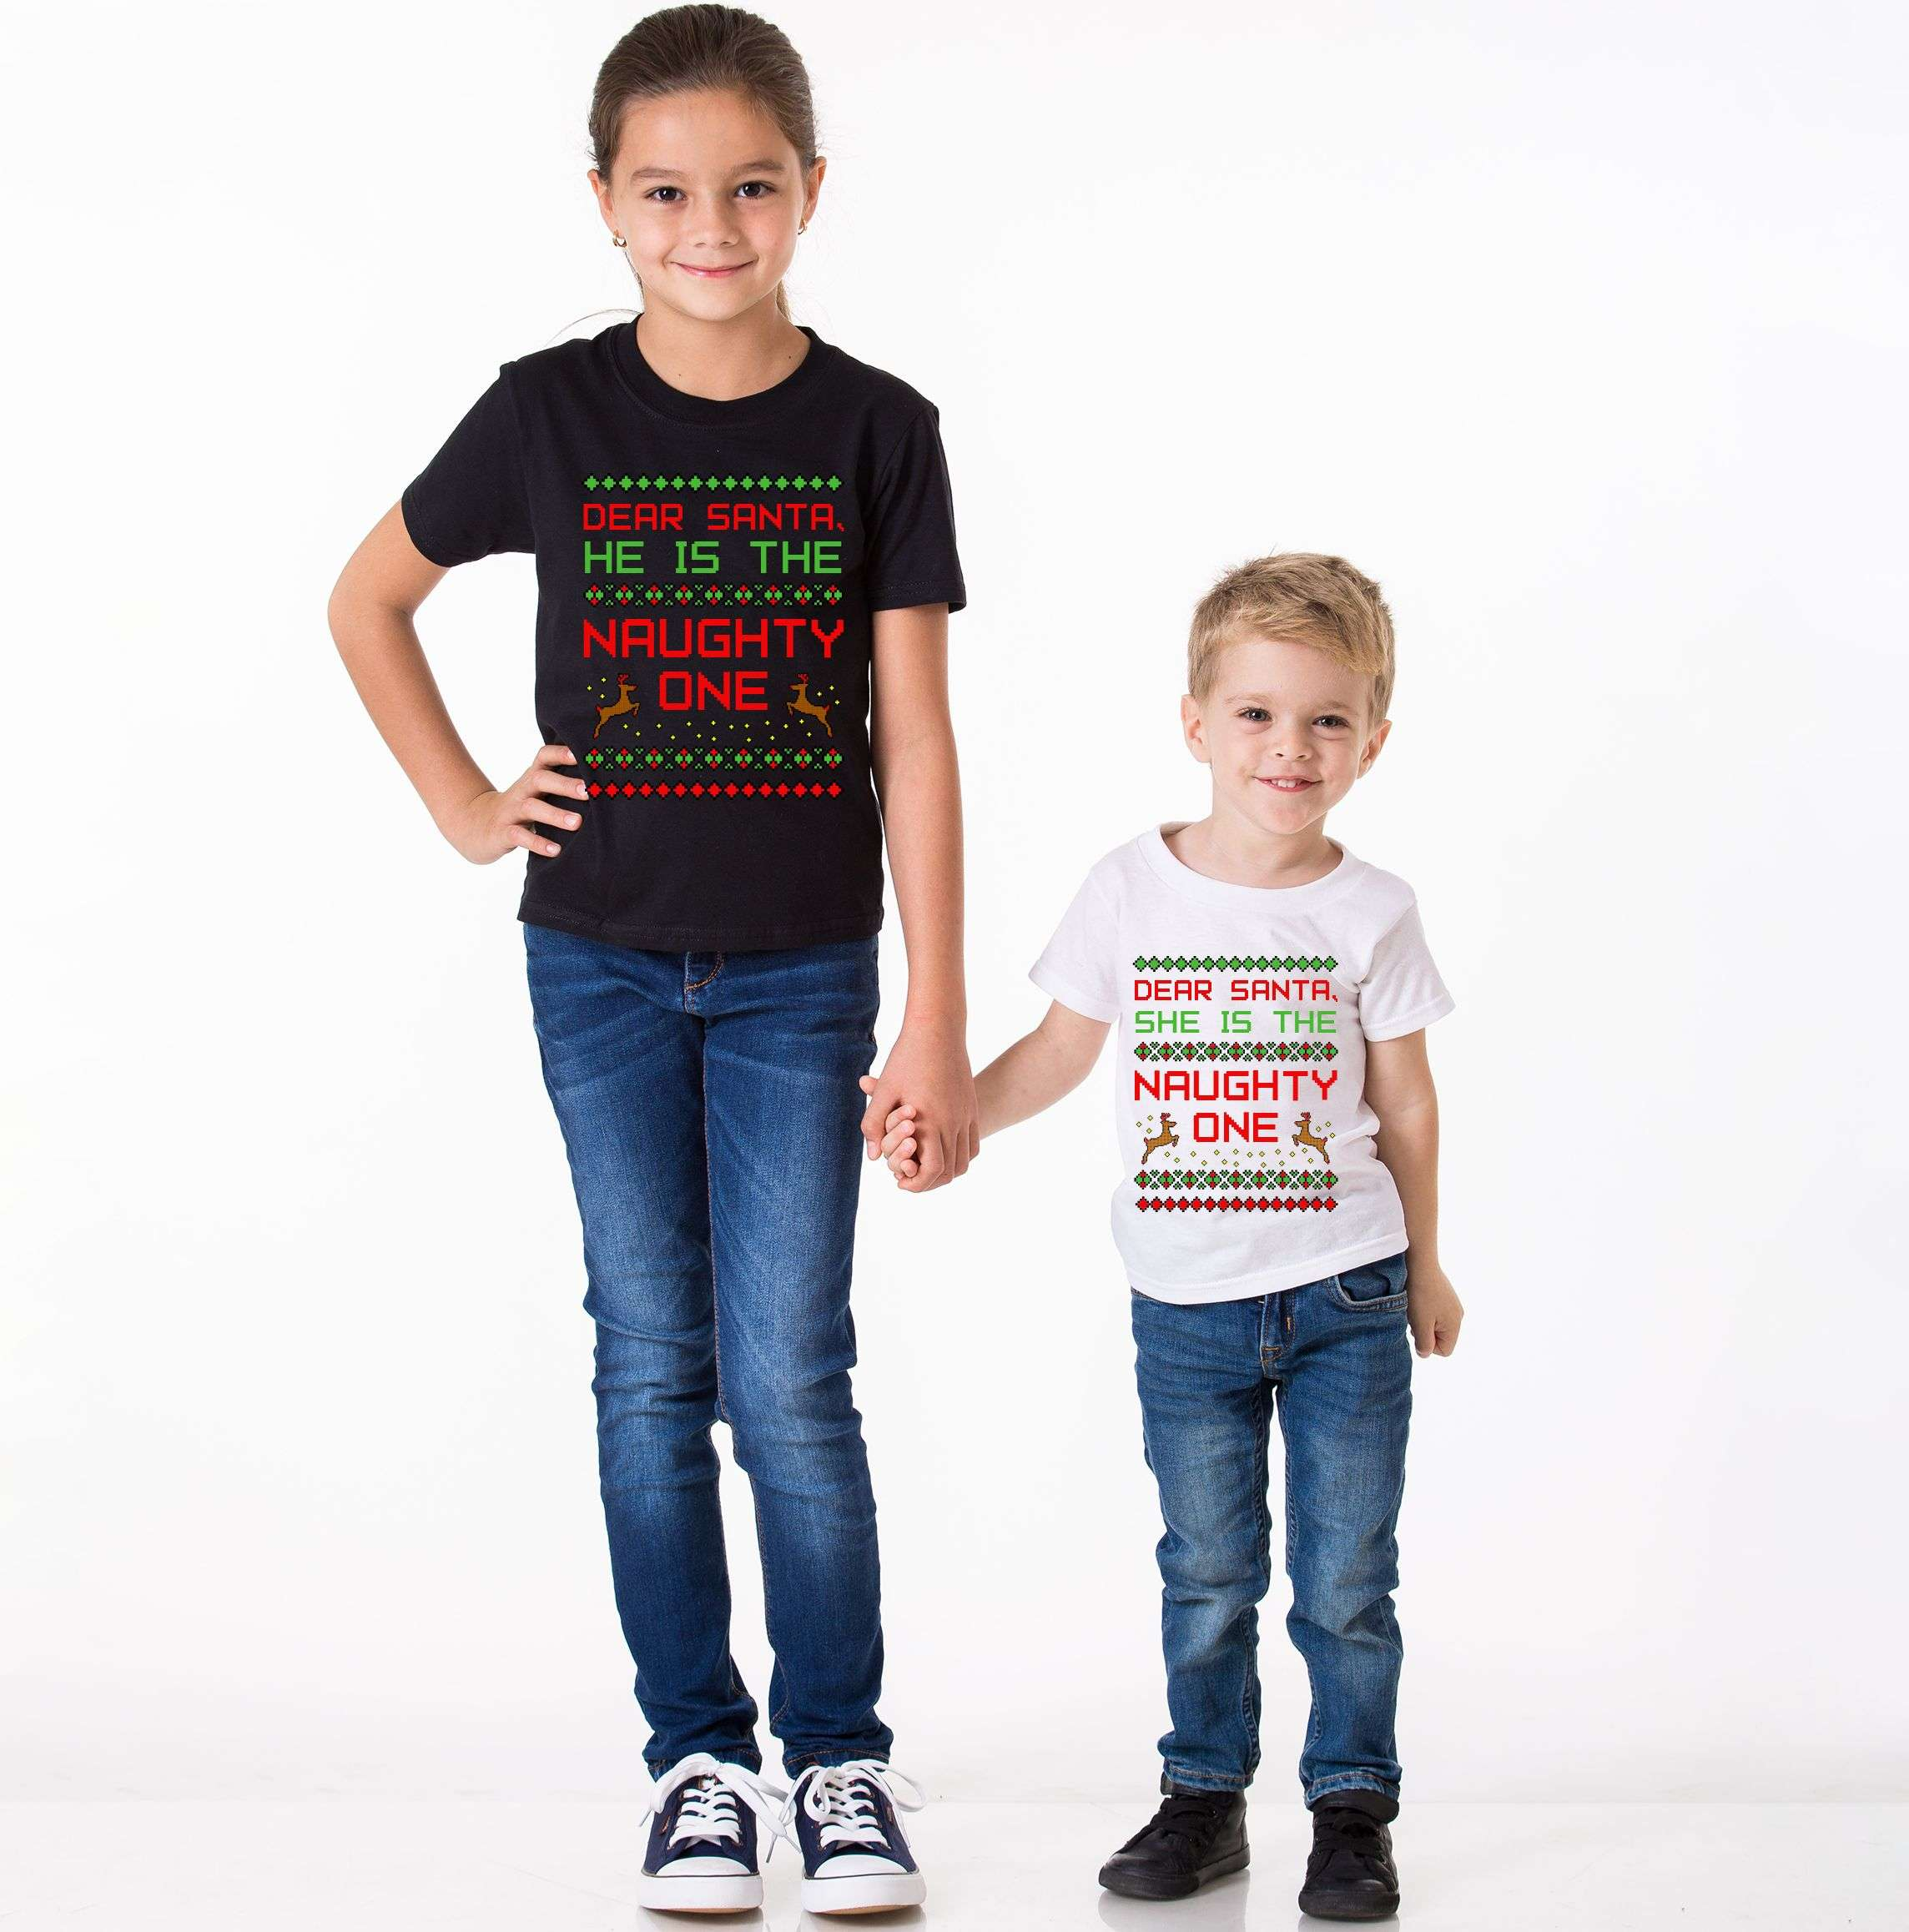 0c156fb16 Dear Santa He's the Naughty One, She's the Naughty One, Matching ...